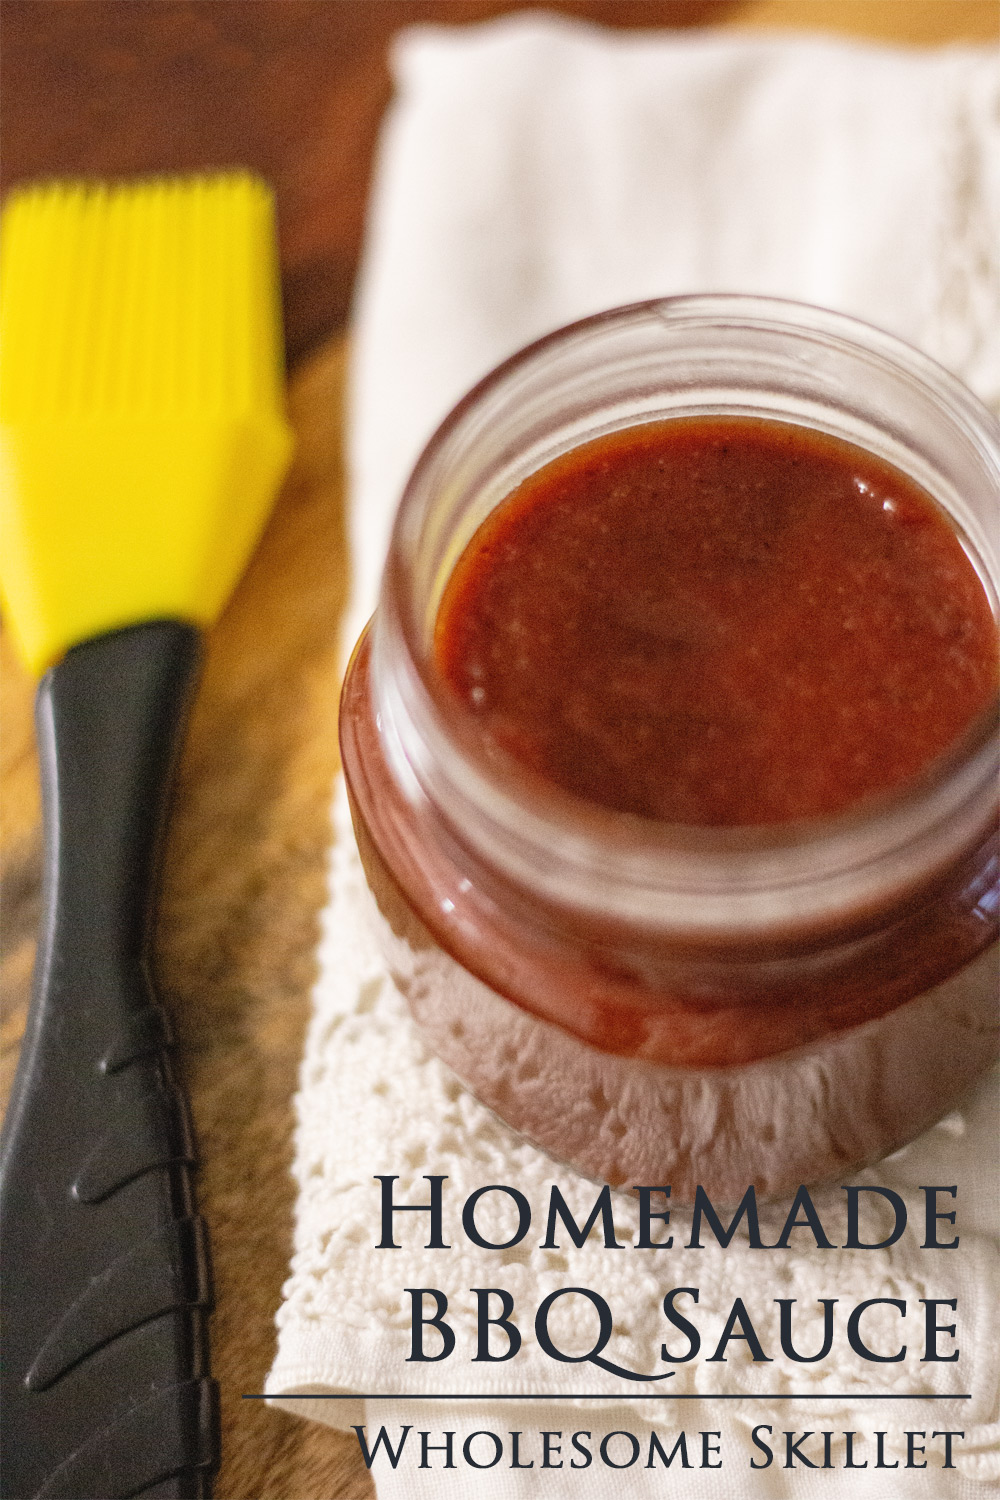 Homemade BBQ Sauce - An easy recipe to whip up, and it's healthier than most store bought versions.